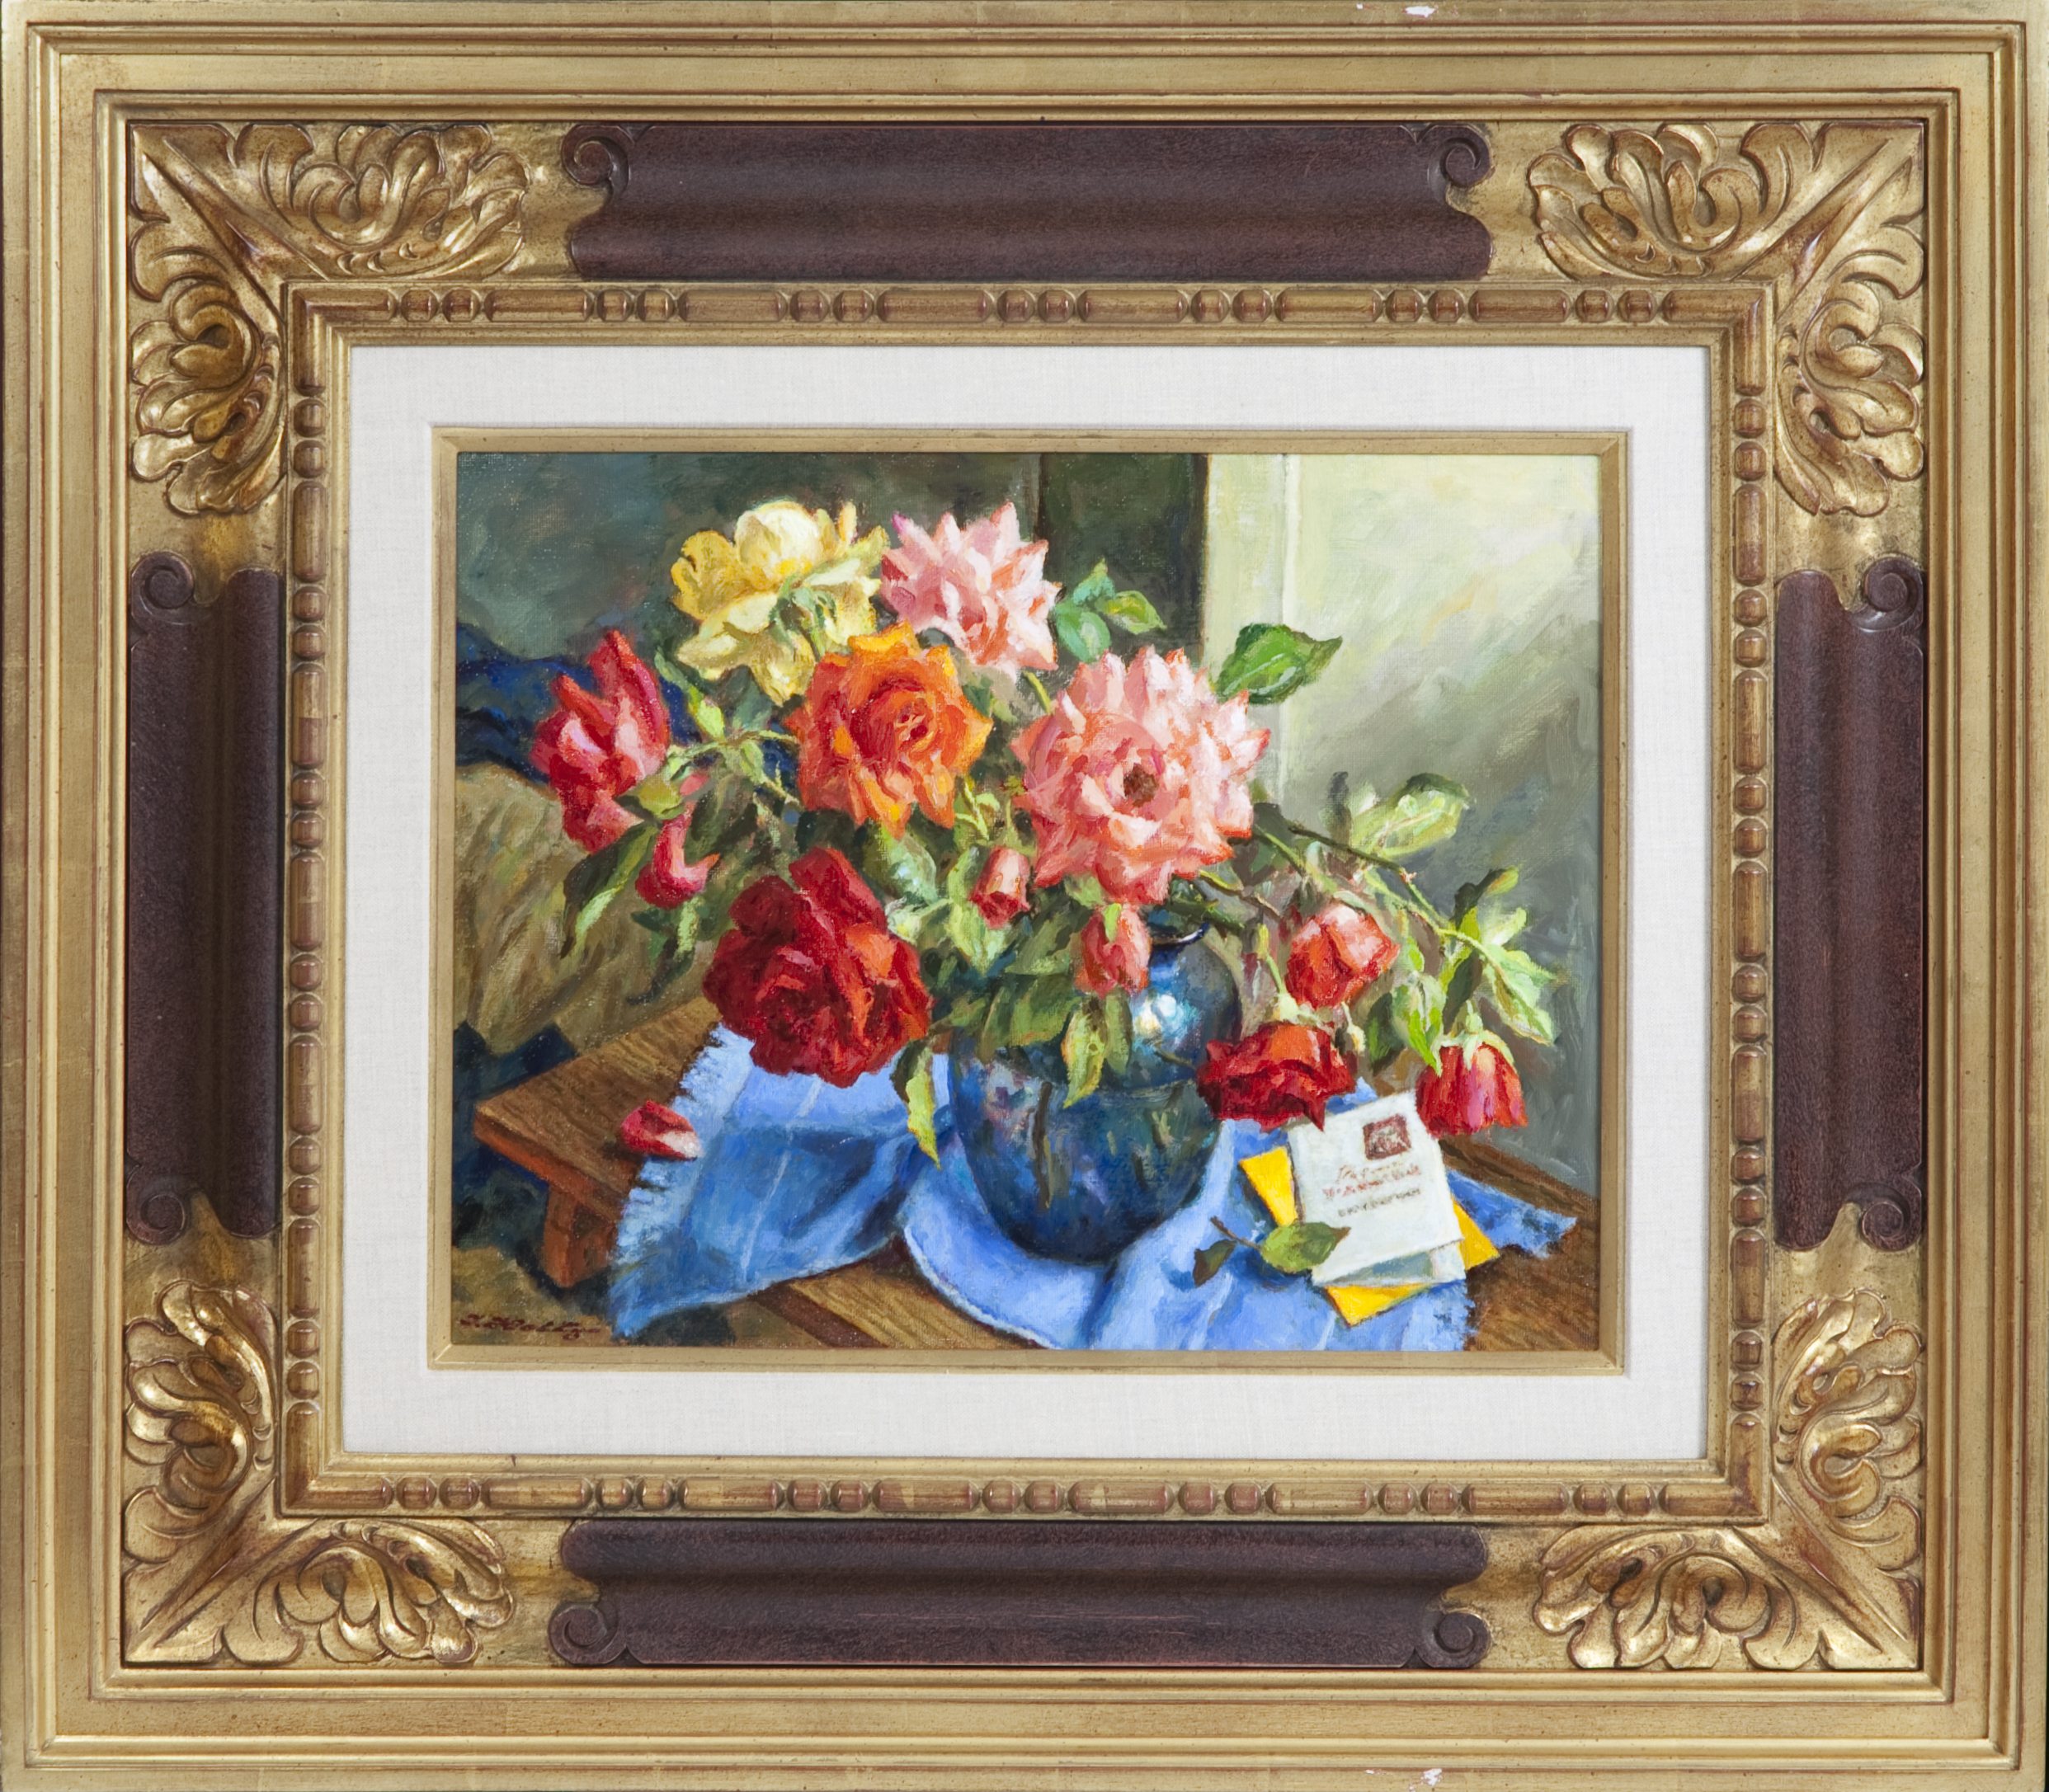 087 Israeli Roses 2007 - Oil on Masonite - 18 x 14 - Frame: 31 x 27.25 x 2.5